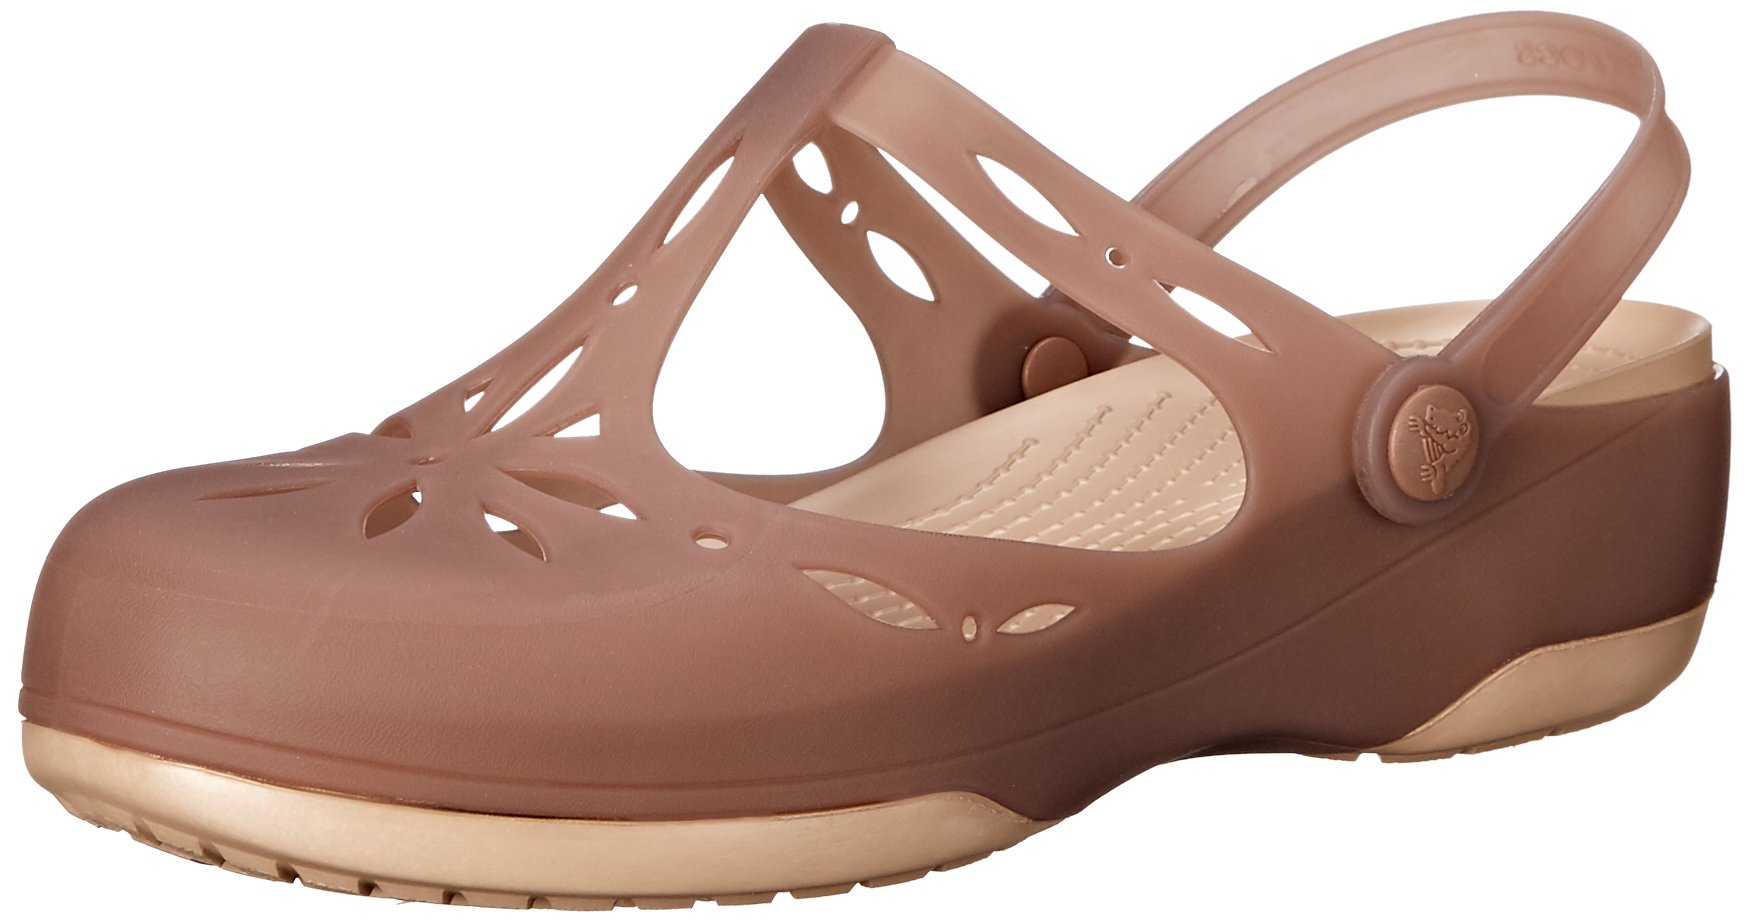 a86756f5a9e70b Get Quotations · Crocs Women s Carlie Cutout Clog